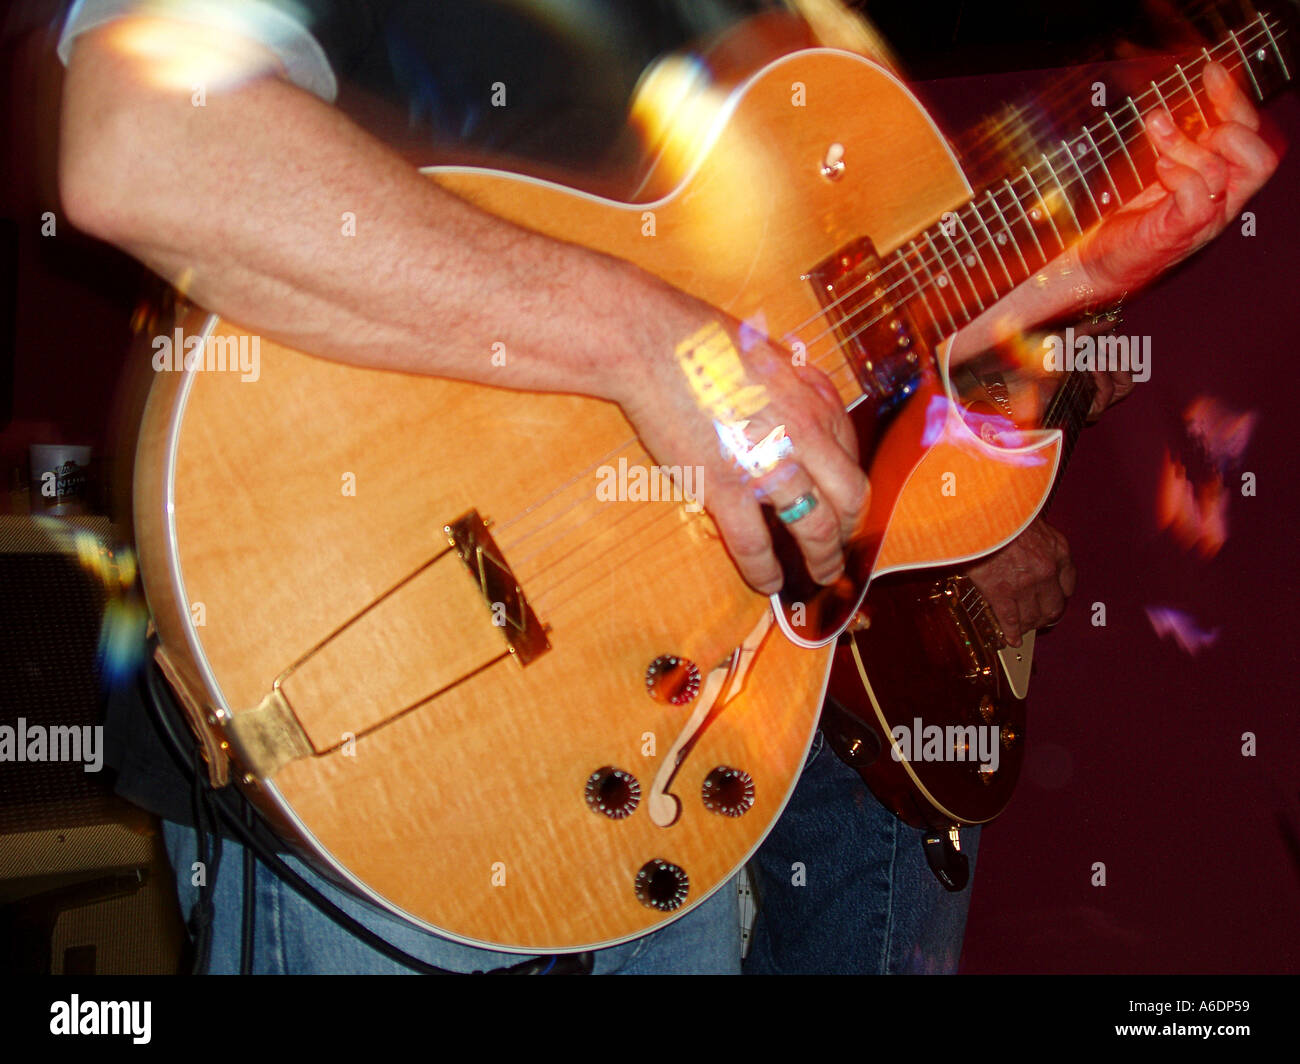 Joueur de guitare Photo Stock